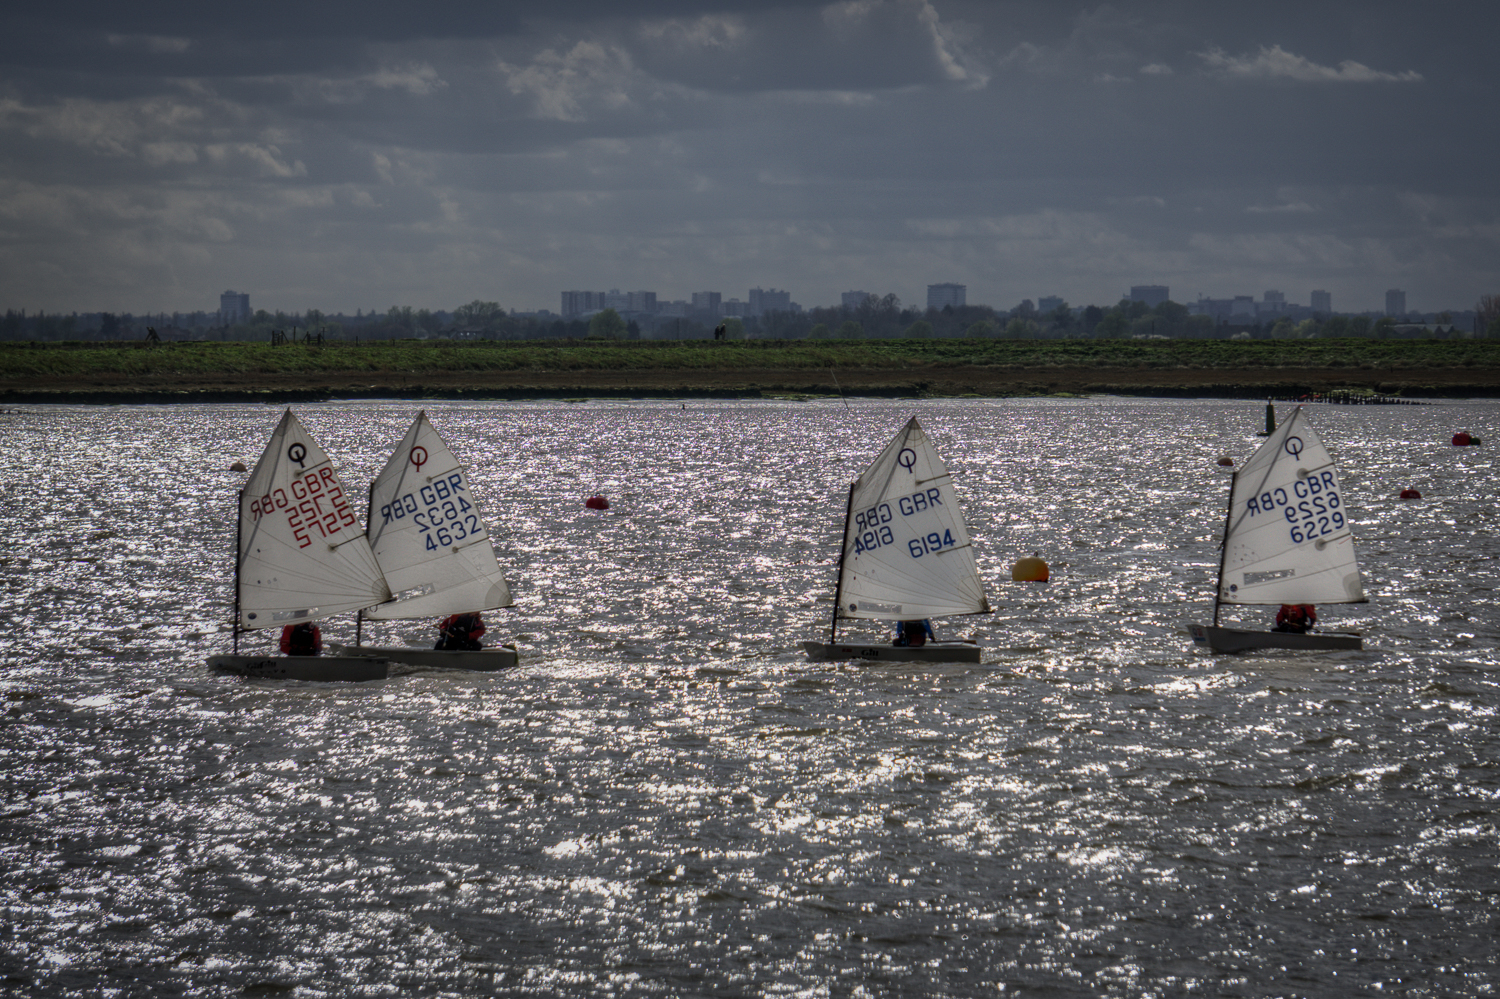 Burnham on Crouch - small yacht racing